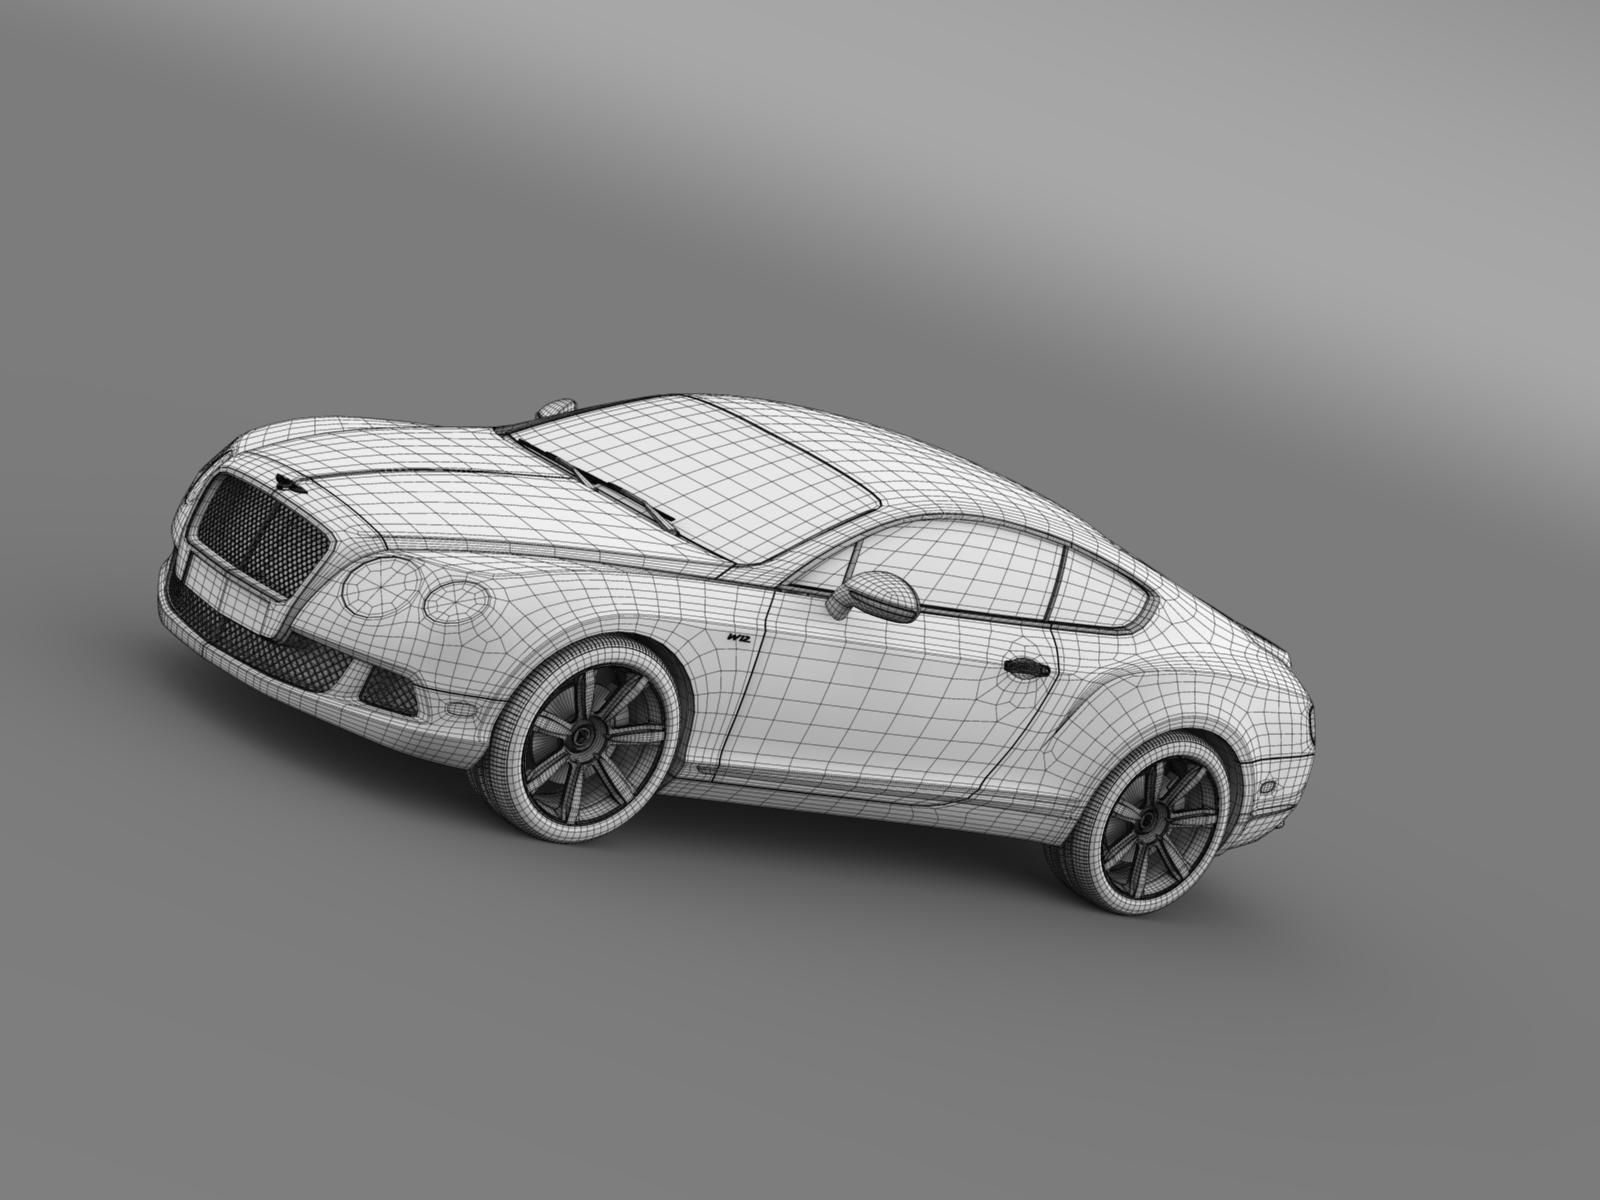 Bentley continental gt speed le mans edition 2013 3d model max obj bentley continental gt speed le mans edition 2013 3d model max obj 3ds fbx c4d lwo vanachro Image collections